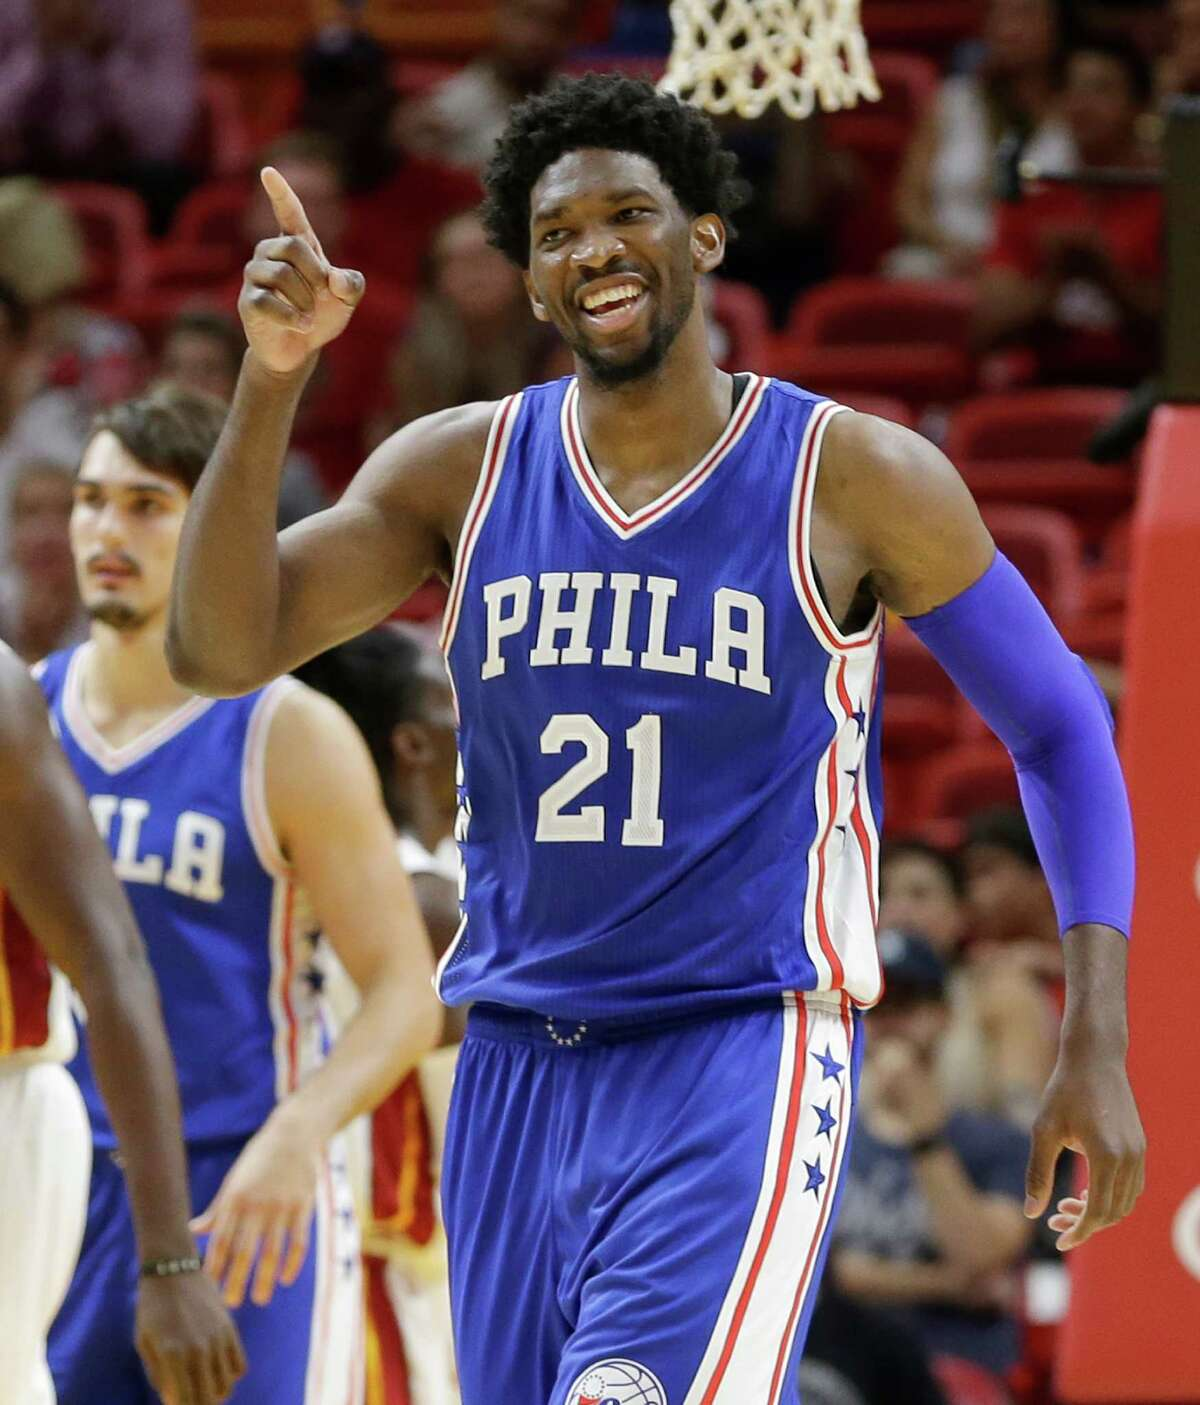 Philadelphia 76ers center Joel Embiid celebrates after scoring against the Miami Heat during the second half of an NBA preseason basketball game, Friday, Oct. 21, 2016, in Miami. (AP Photo/Alan Diaz)